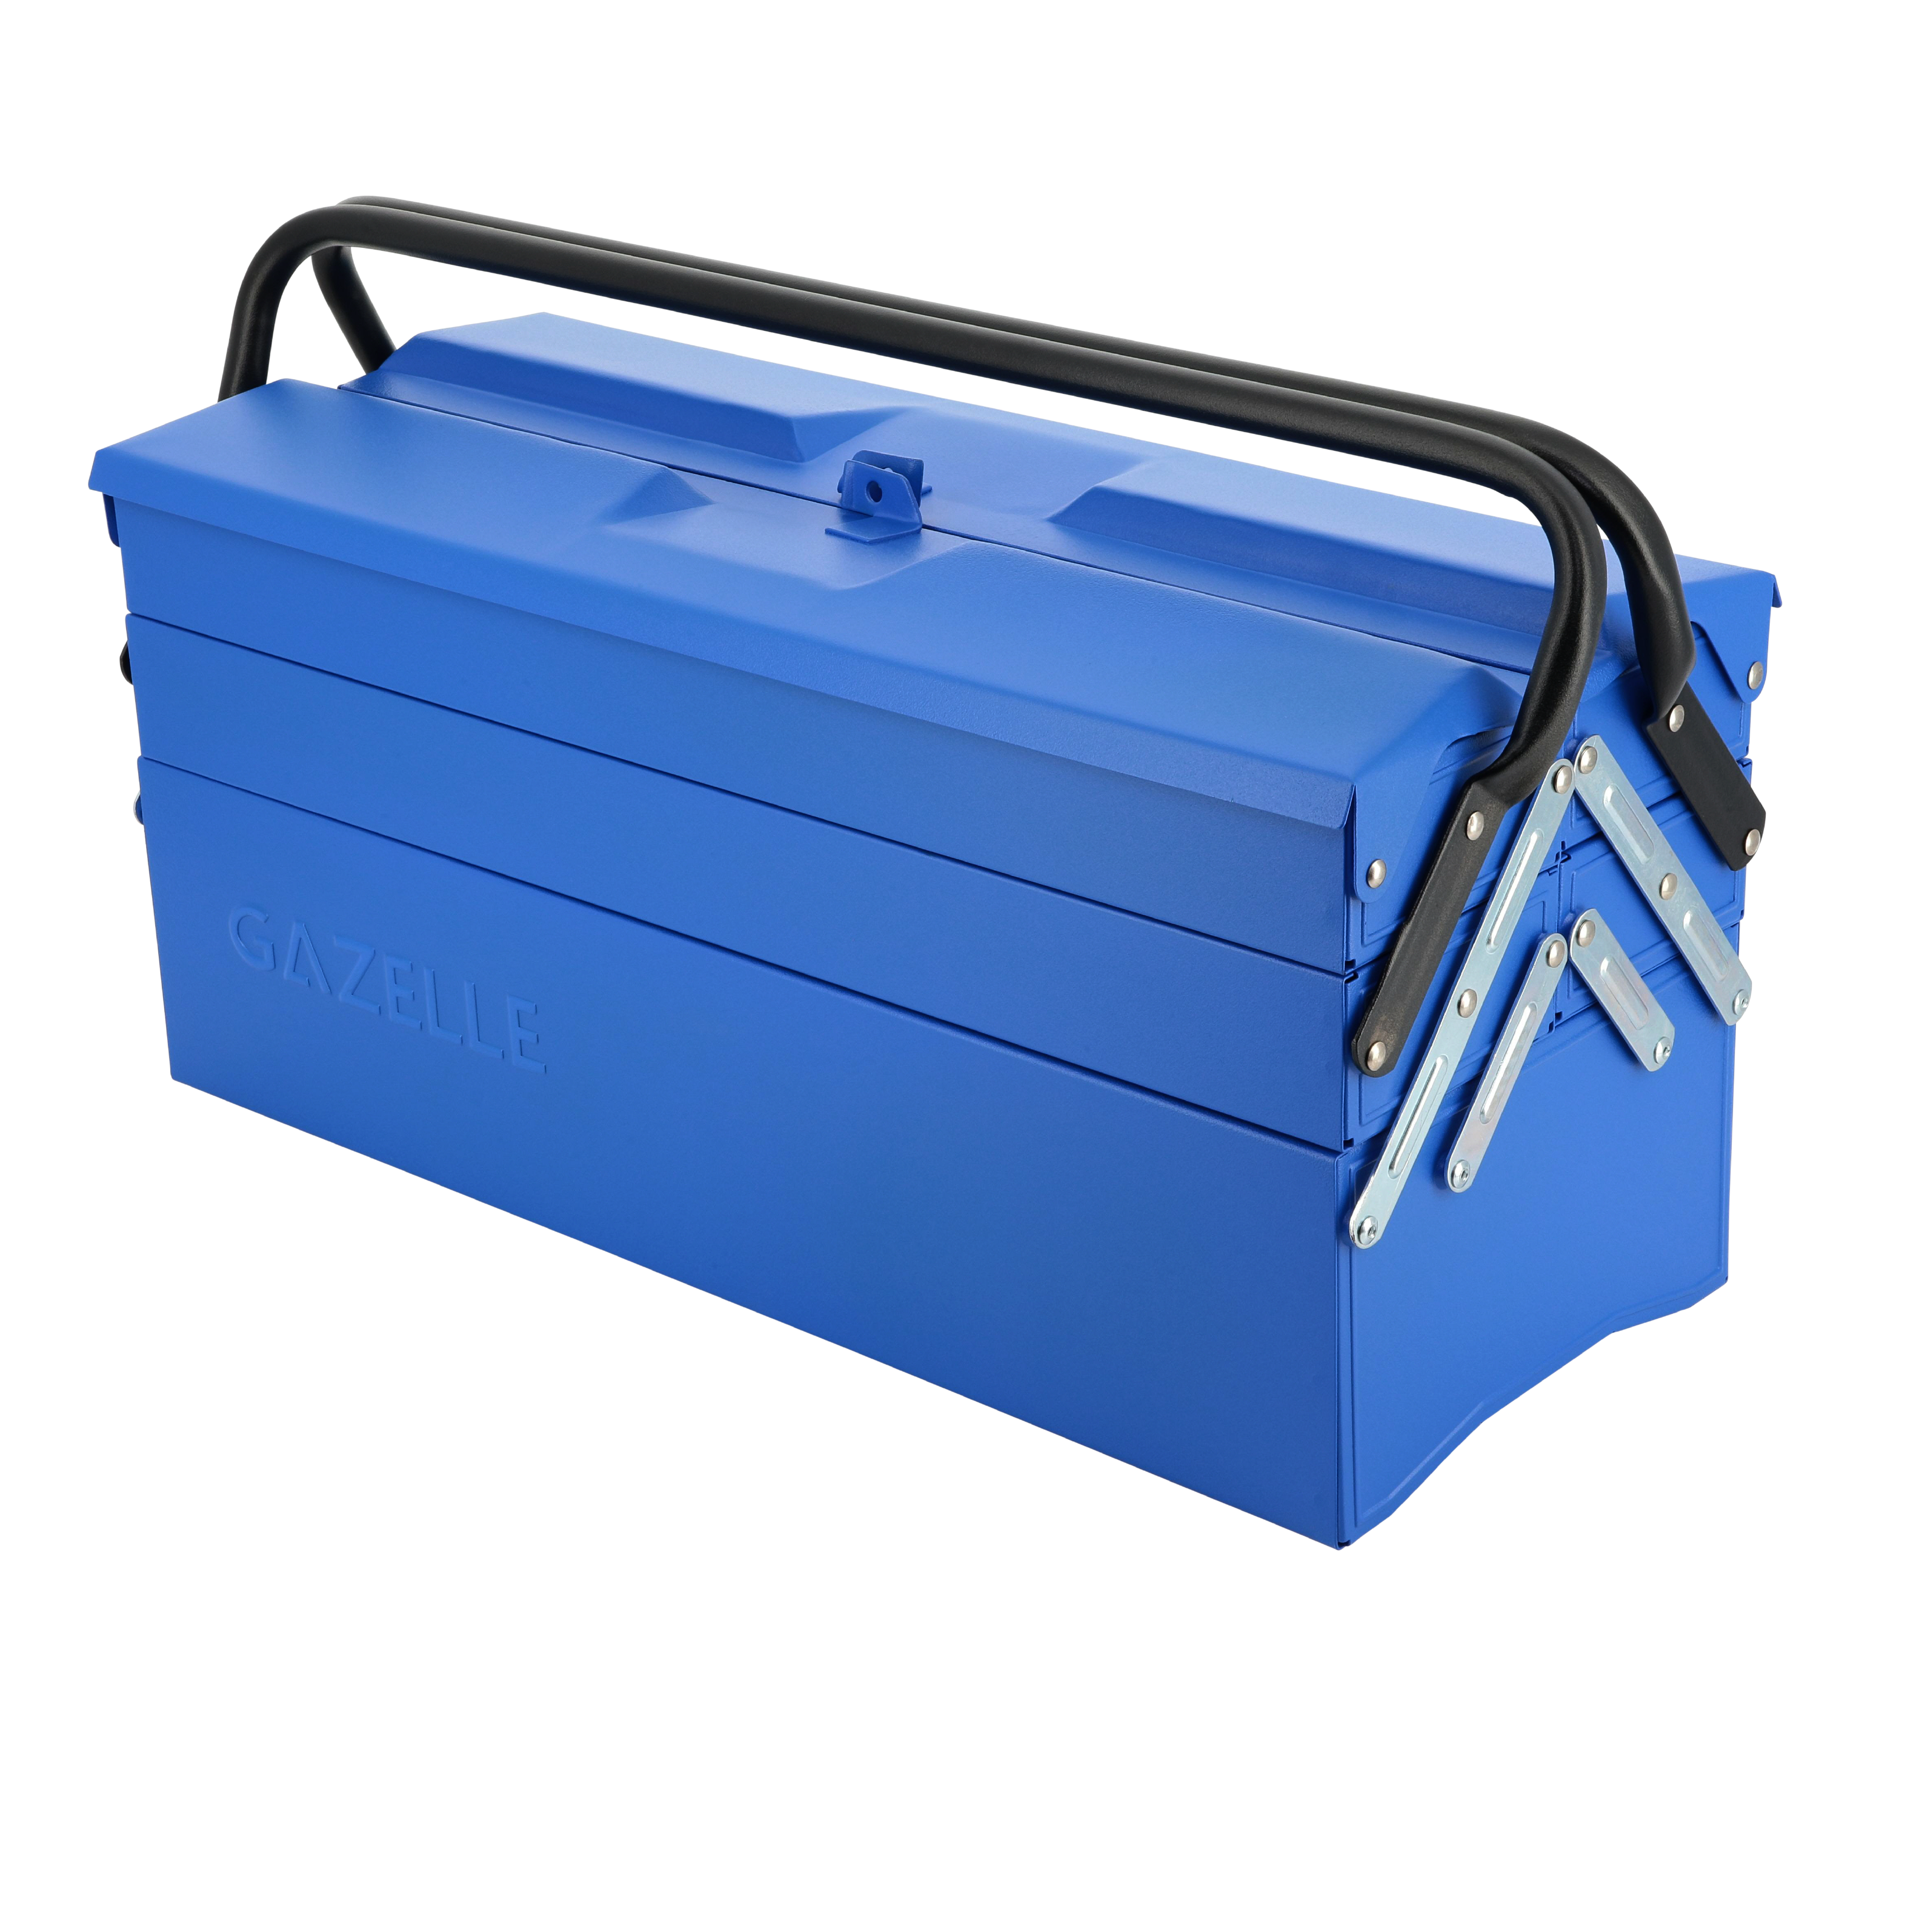 GAZELLE G2020 - G2020 20 Inch 5 tray cantilever tool box